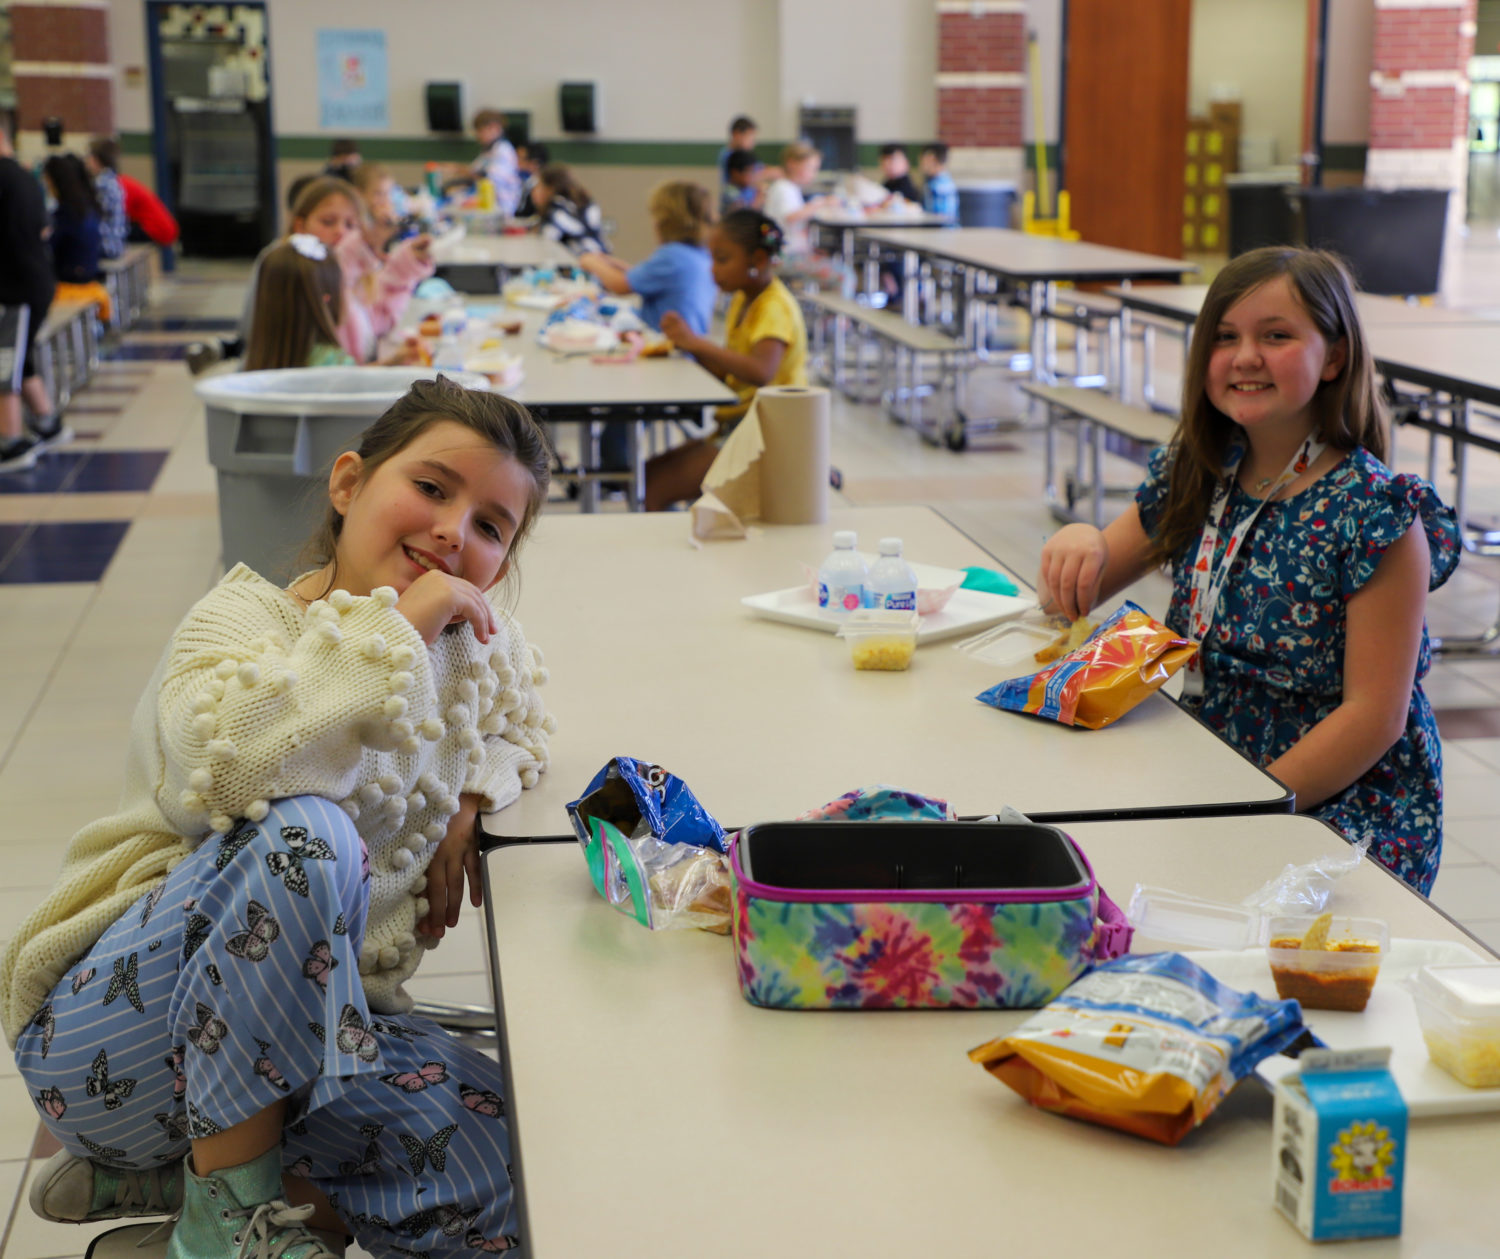 Two students sit together at the lunch table.